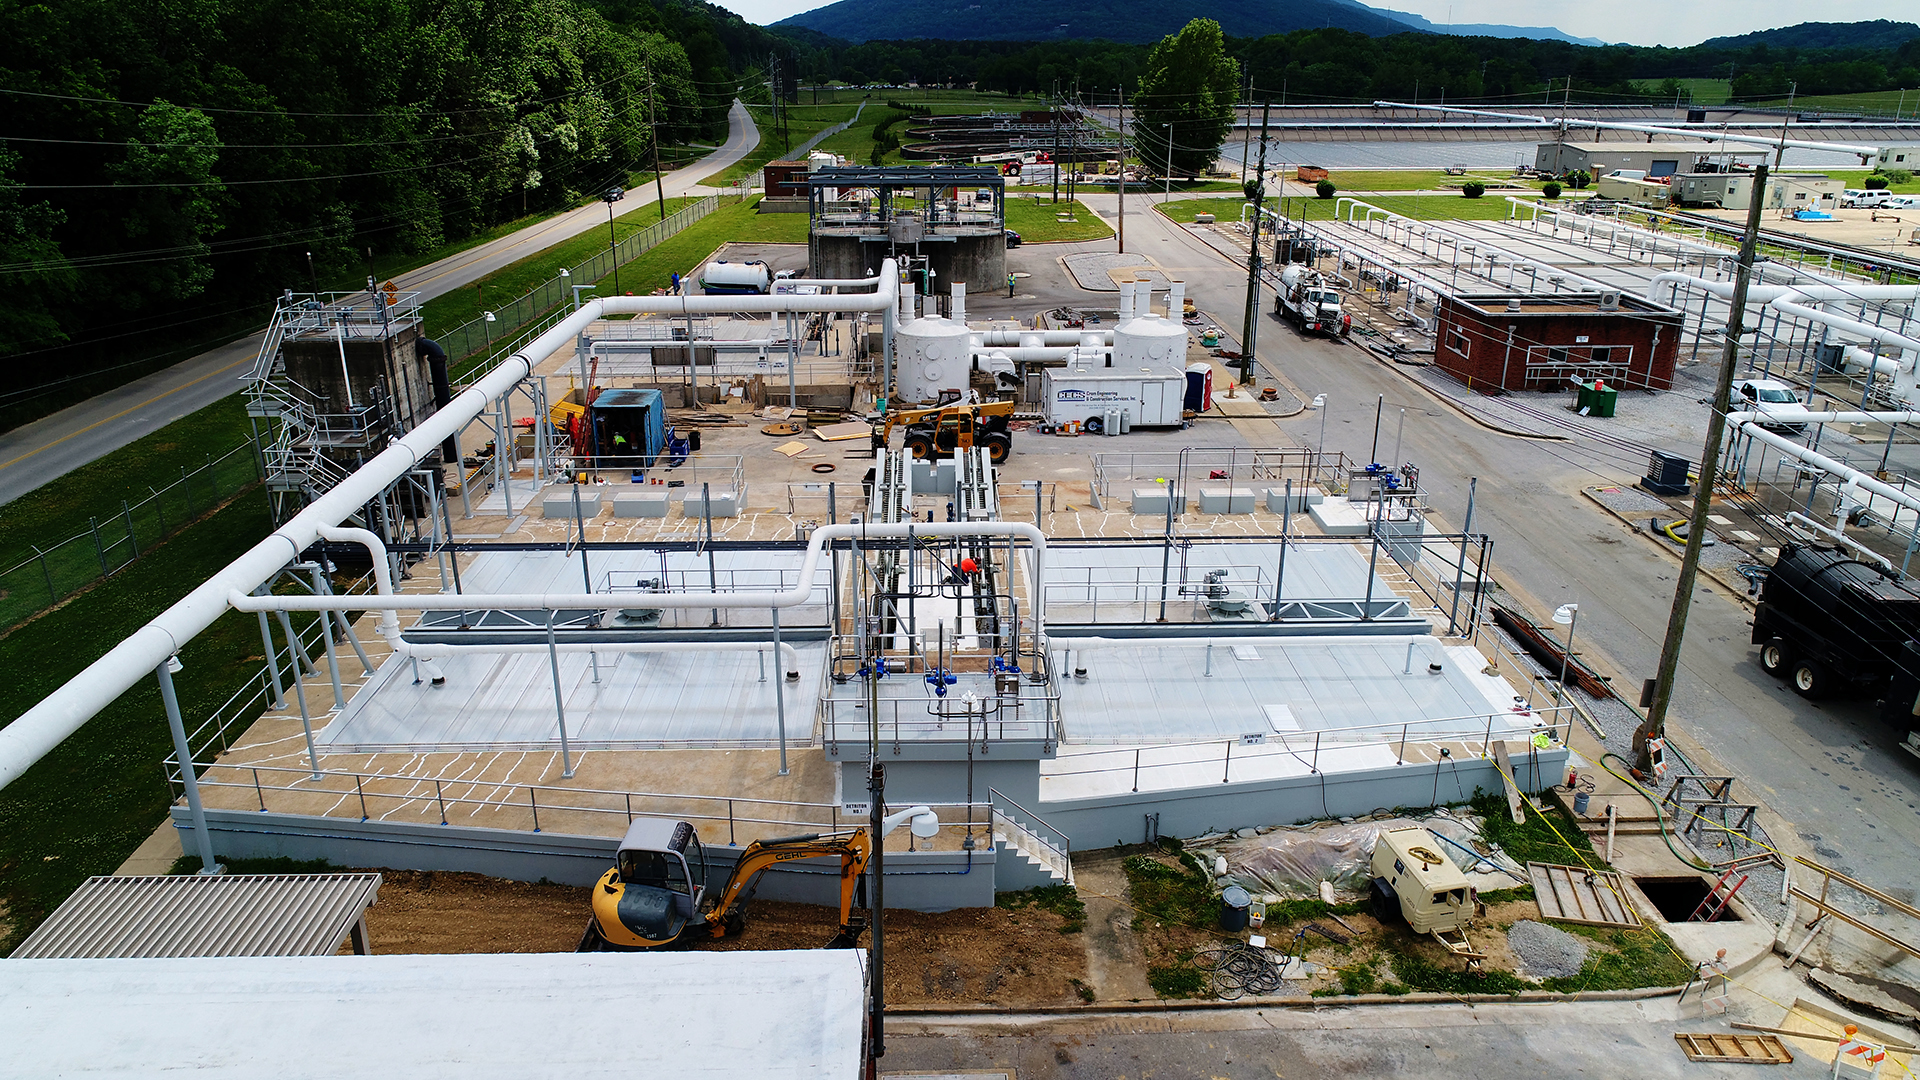 The city is making improvements to the Moccasin Bend Wastewater Treatment Plant, including the rehabilitation and upgrade of influent grit detritors and related splitter box in an effort to increase performance of the screening operations and reduce SSOs. (Photo Courtesy of Chattanooga Department of Public Works)